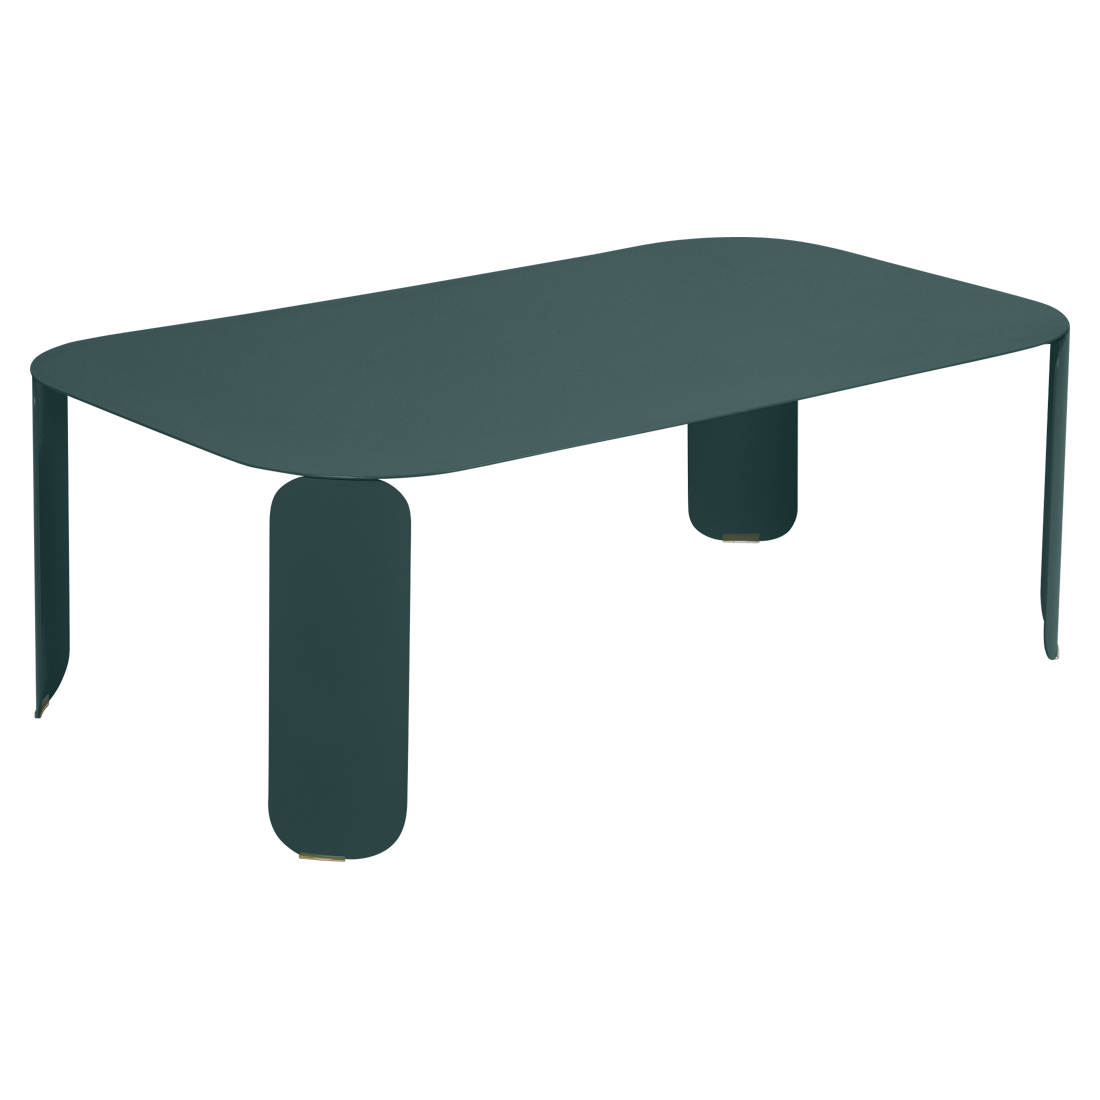 table basse metal, table basse fermob, table basse design, table basse gris